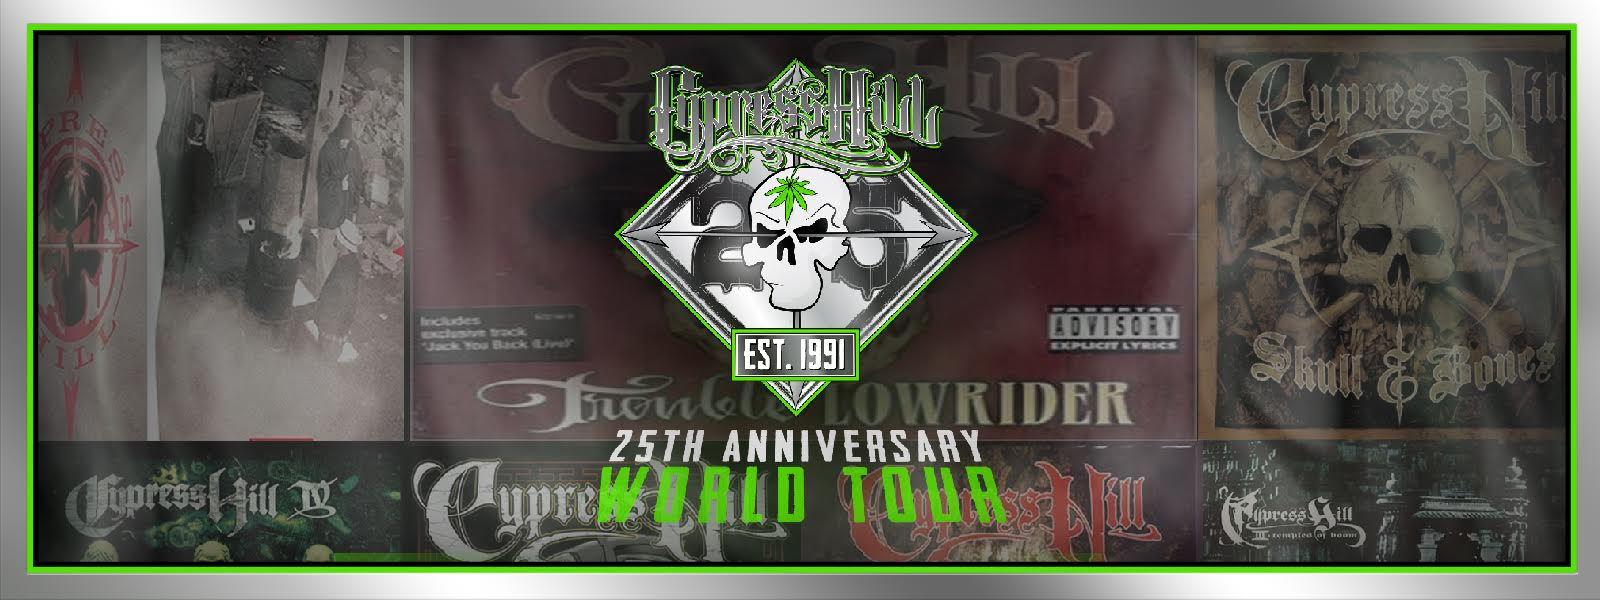 Cypress Hill World Tour 2016